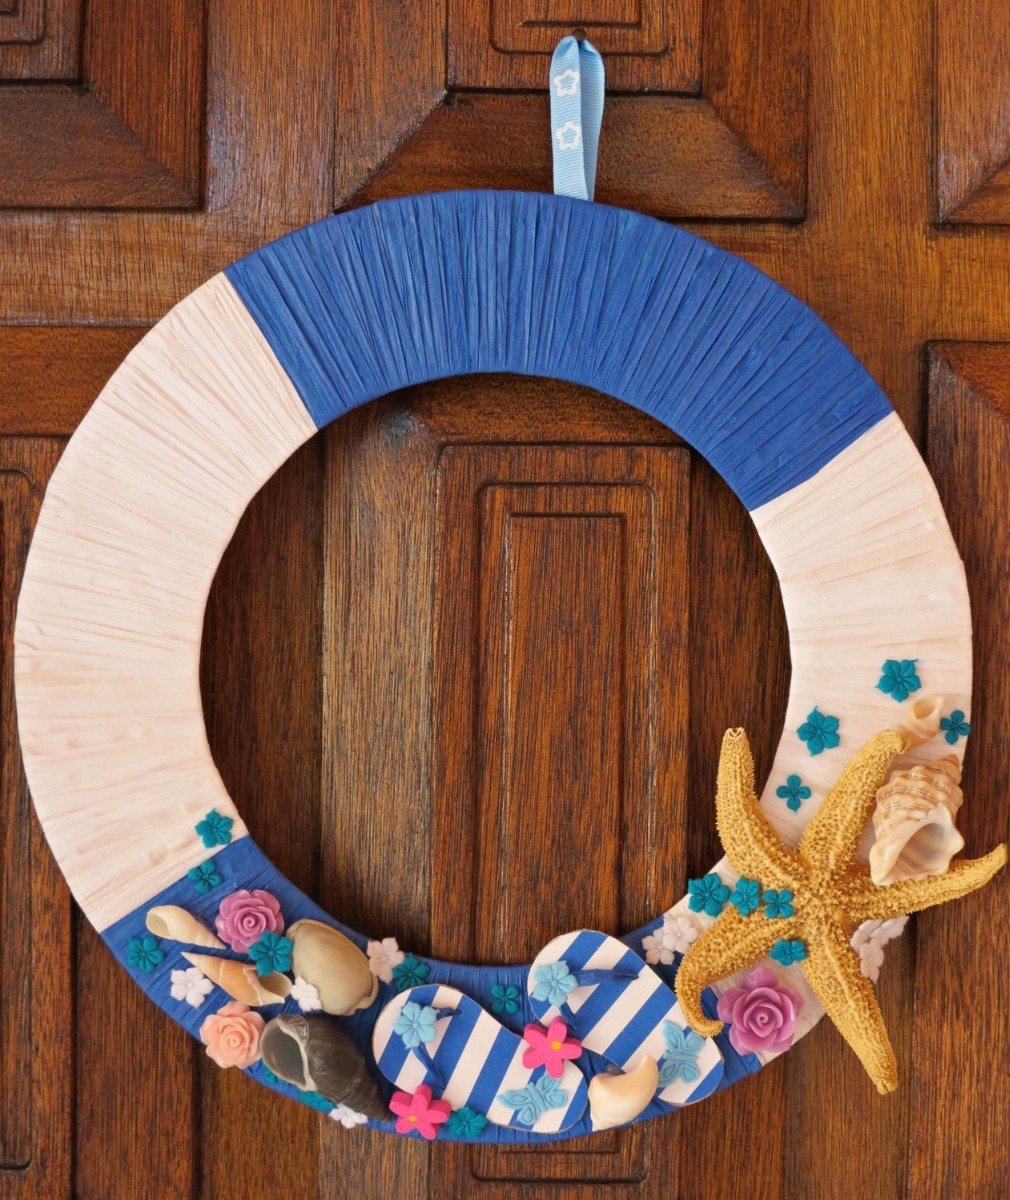 cead8a09431a Make this cute beach themed wreath for seasonal use or as a bit of decor  for a beach house. This is a guide about making a flip-flop beach wreath.